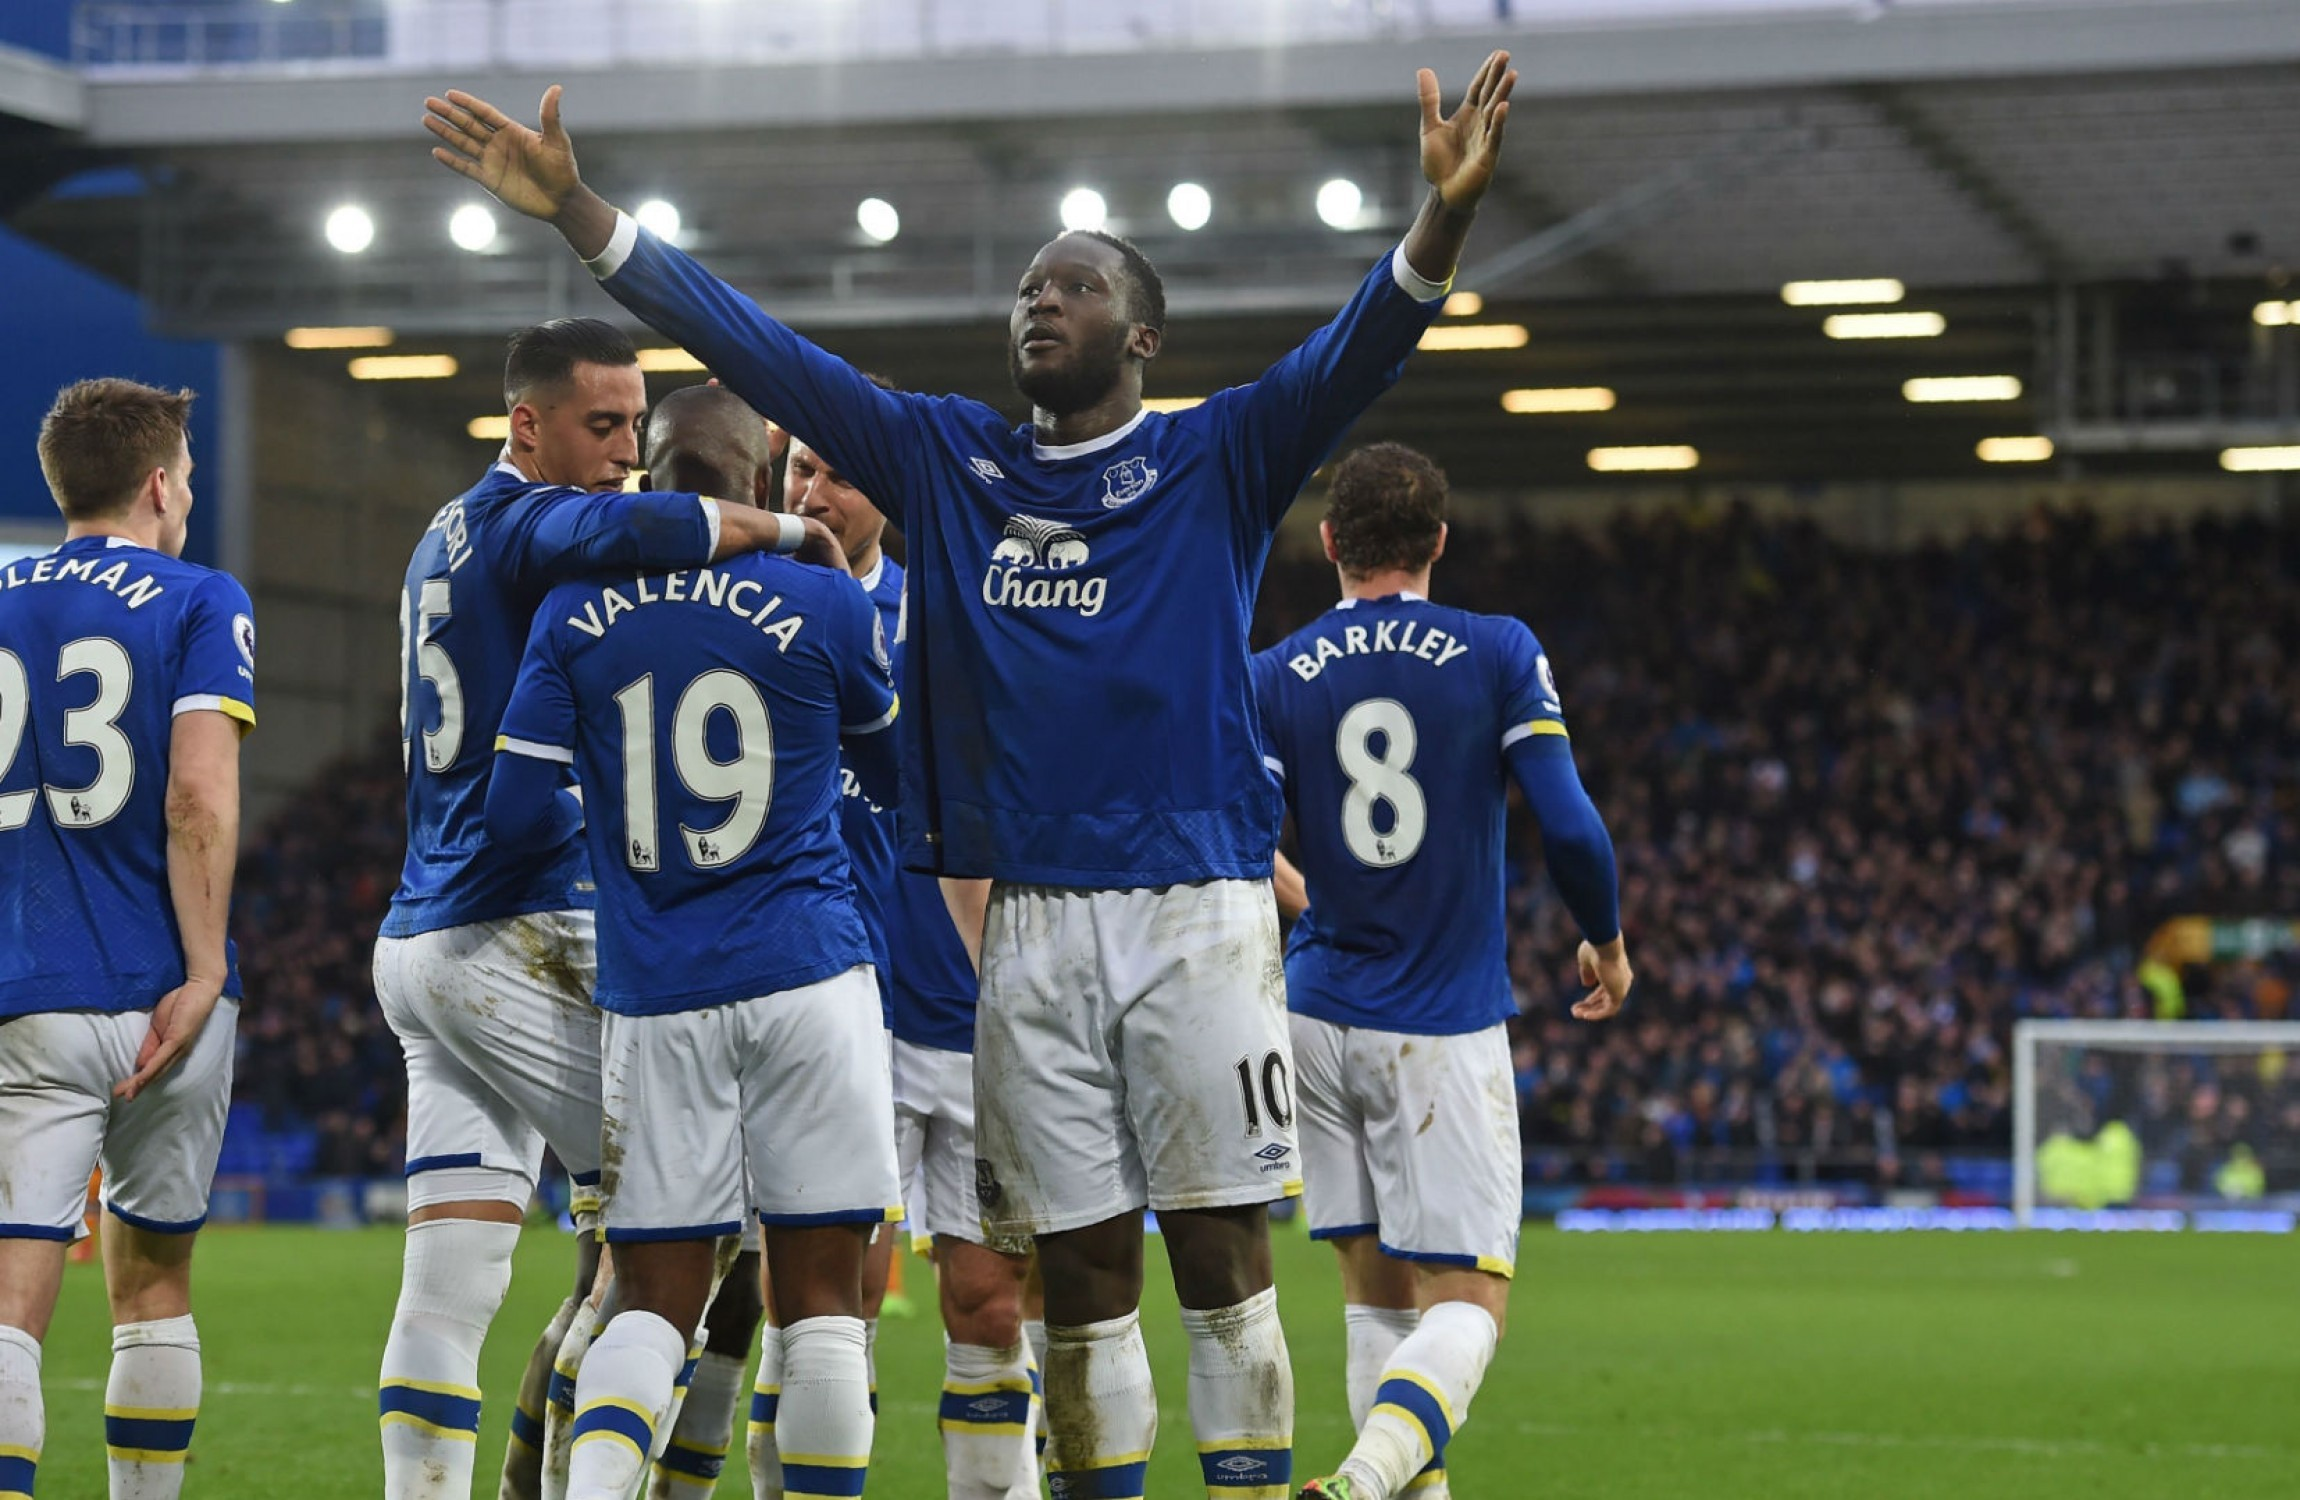 Romelu Lukaku breaks another Everton record in 4-0 win over Hull